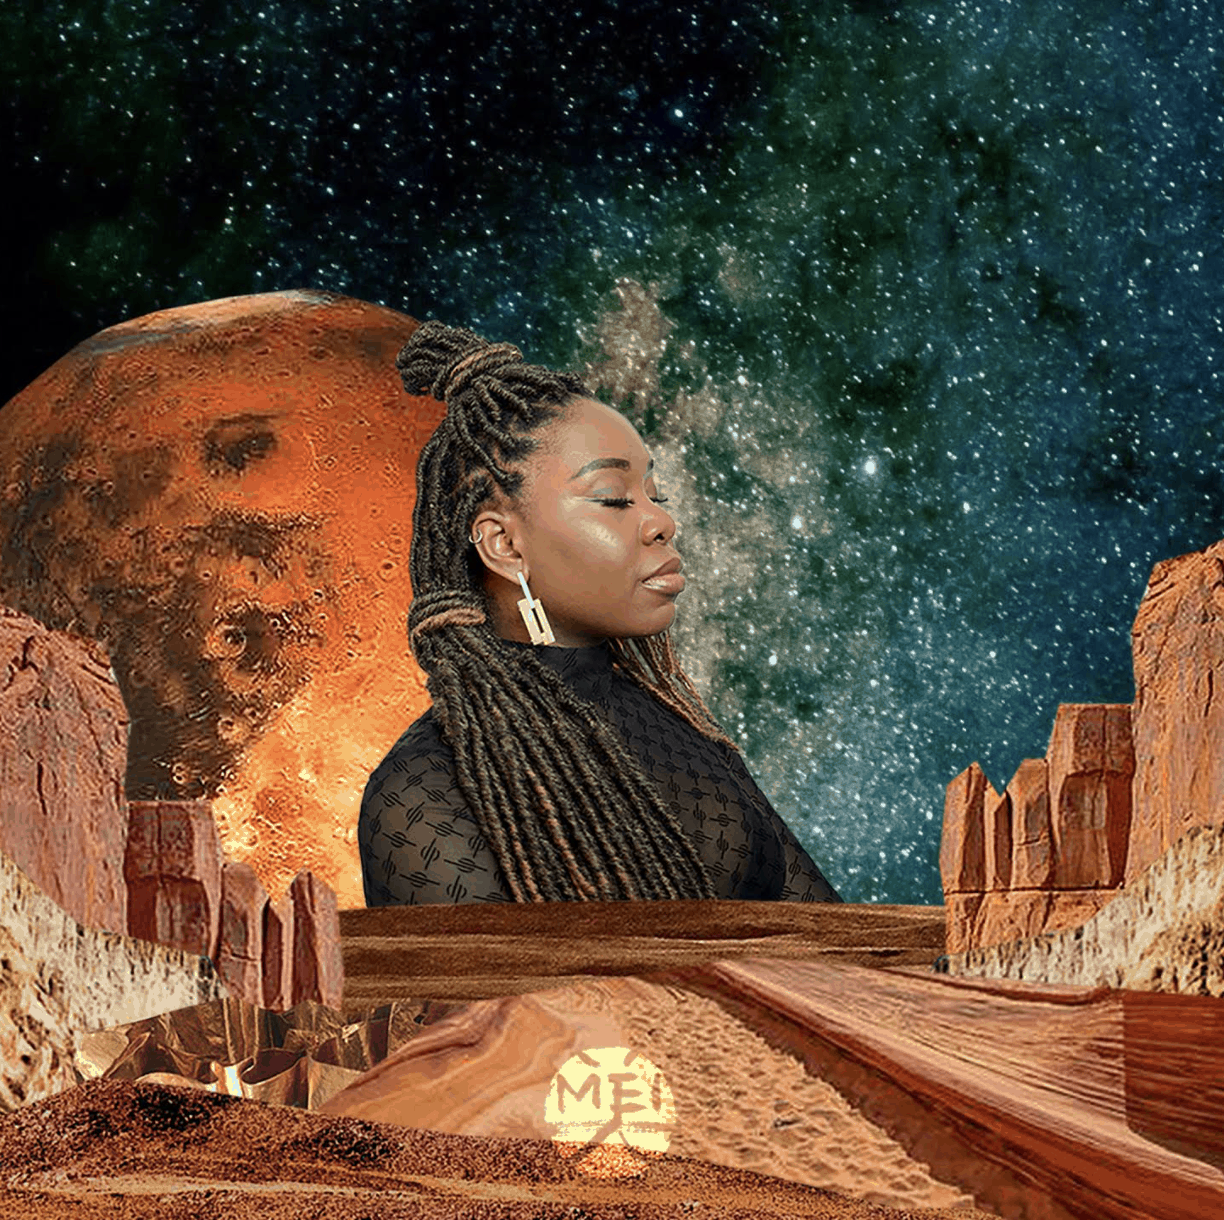 MEI confronts the challenges of the past year in new EP 'The Hard Way Around the Sun'